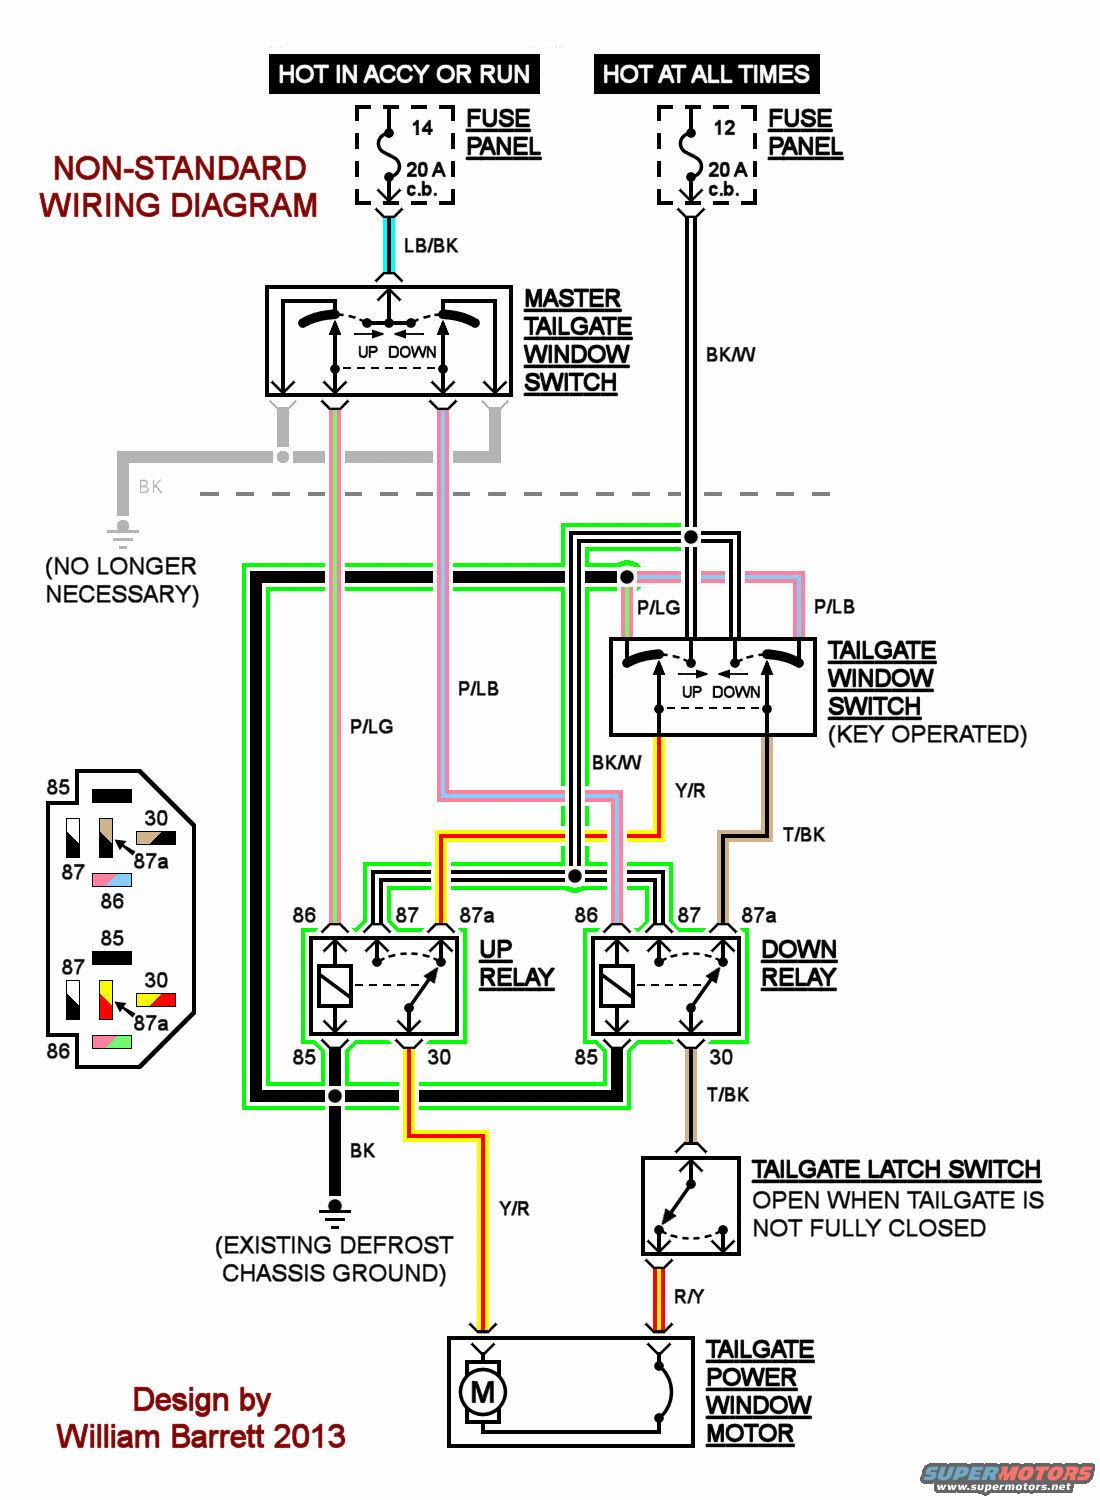 85 F350 Wiring Diagram